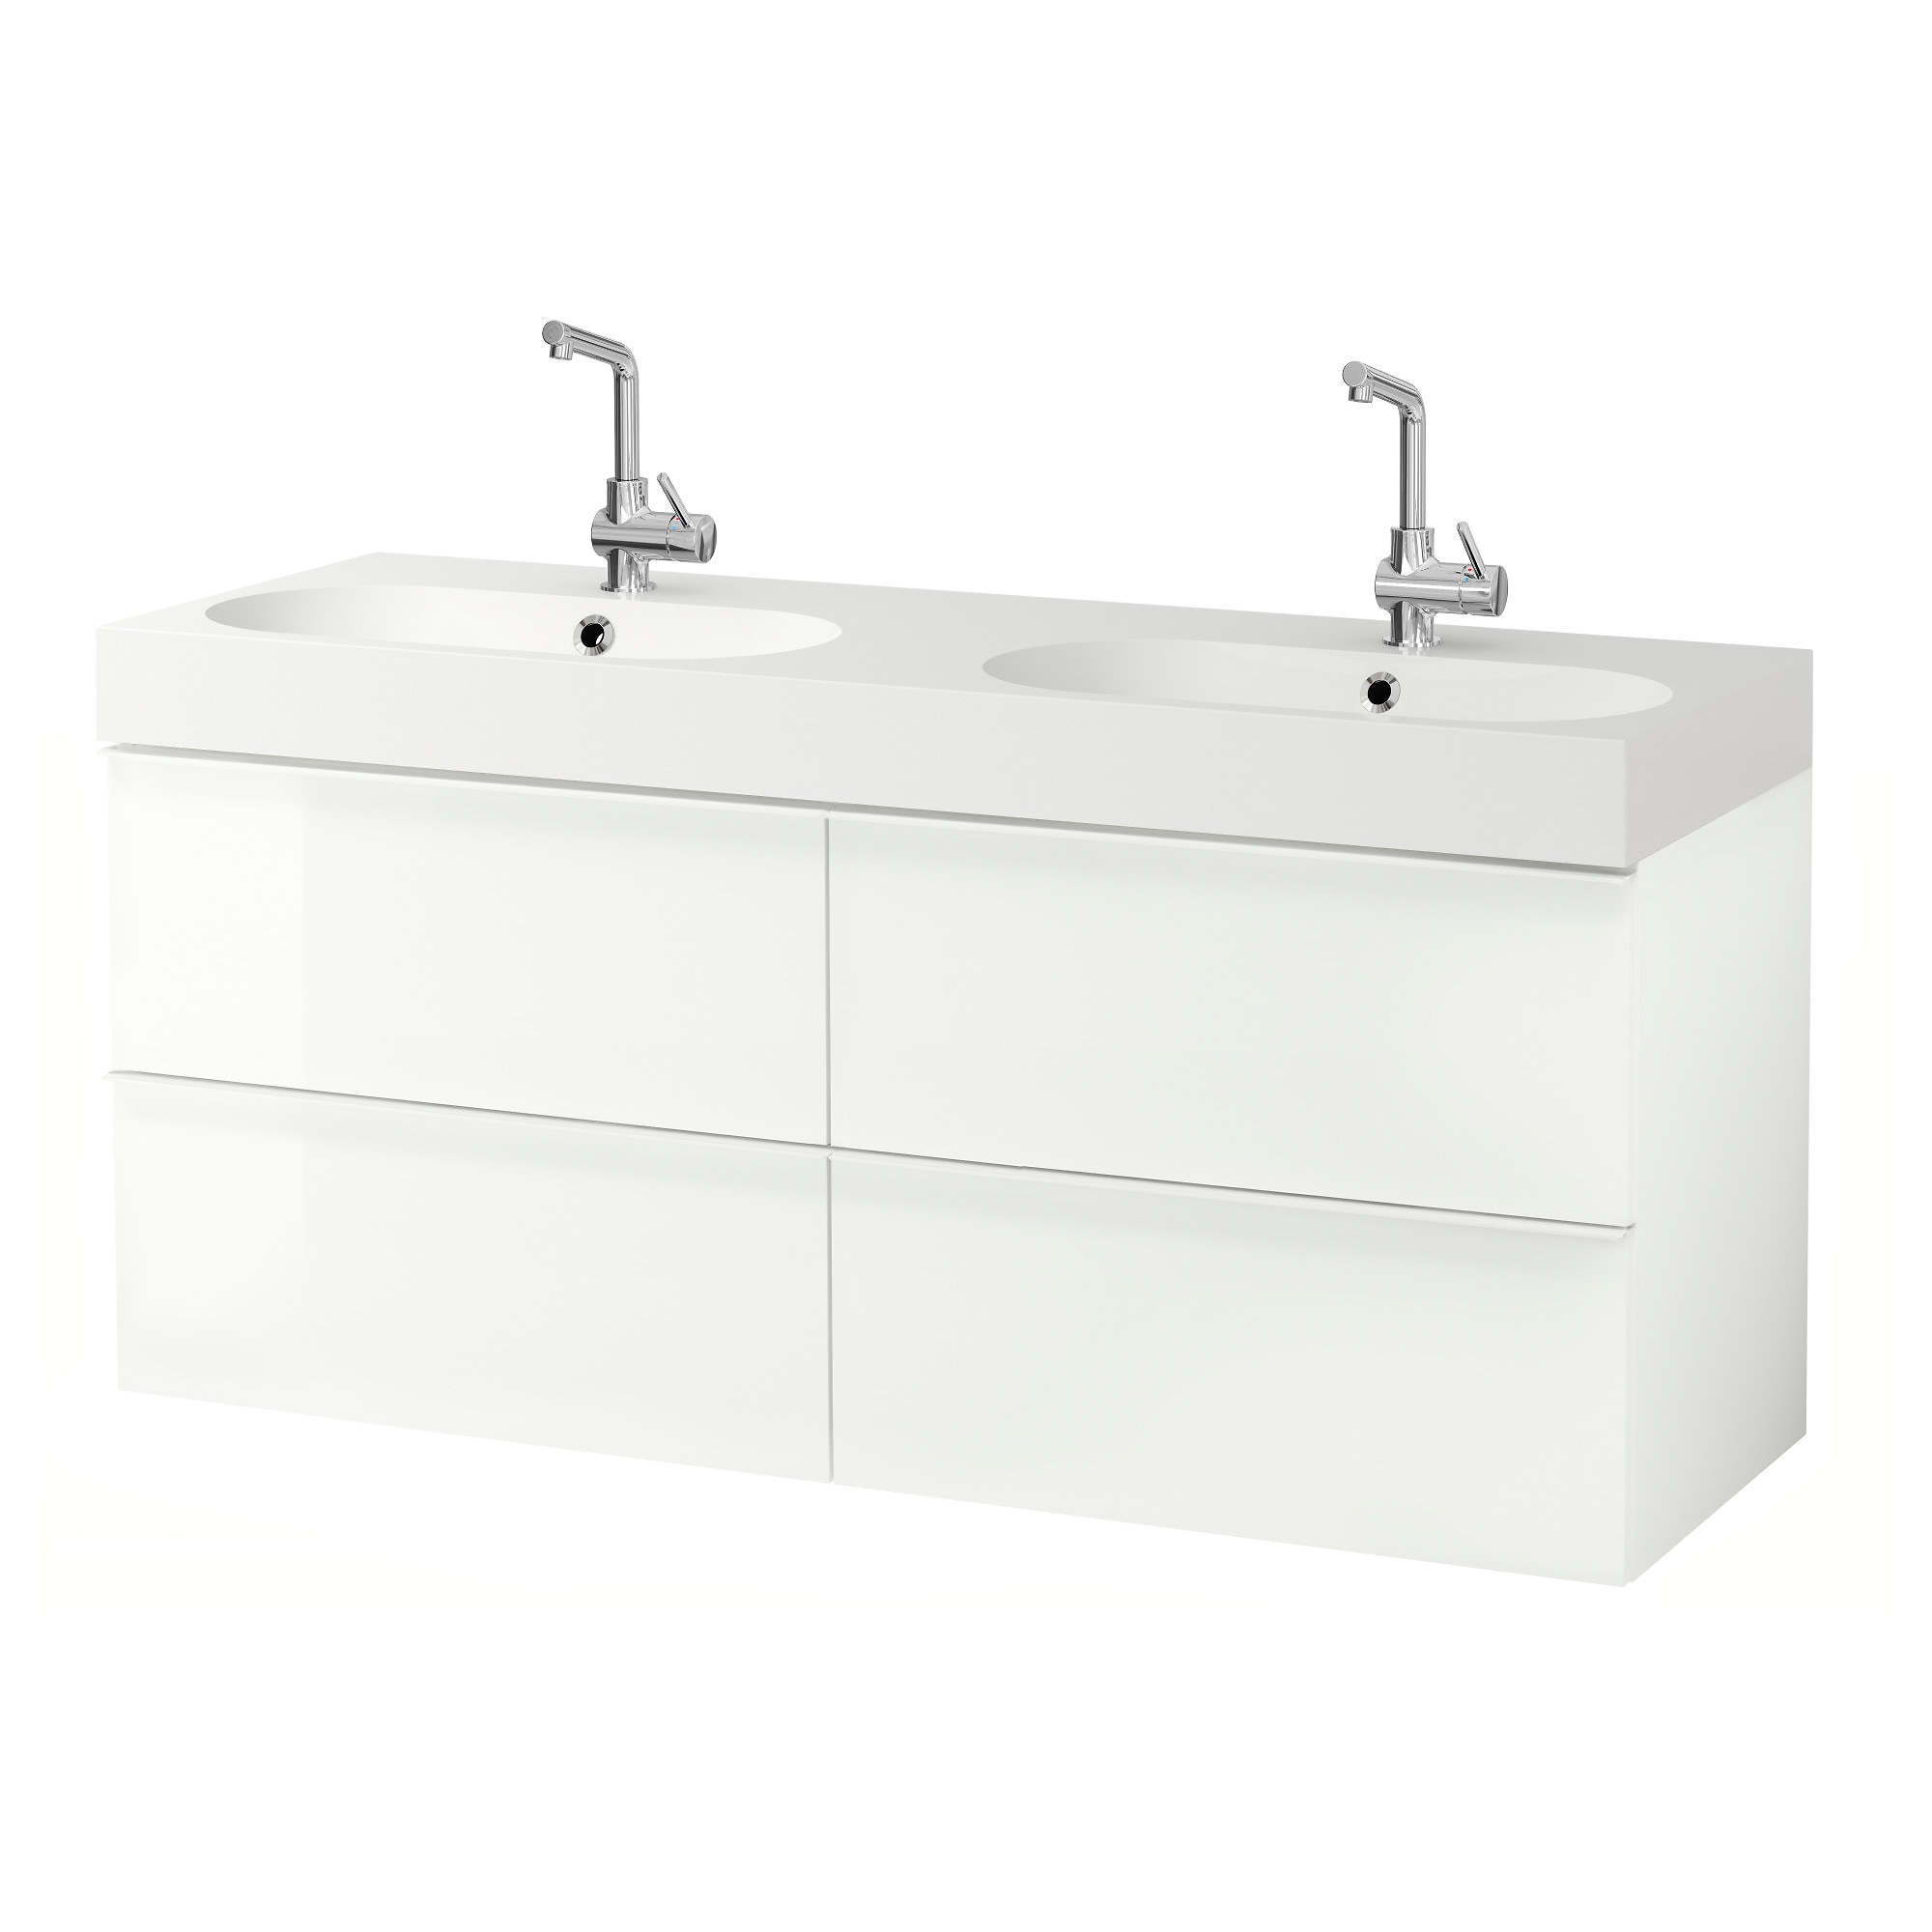 Bathroom sink cabinets ikea - Godmorgon Br Viken Sink Cabinet With 4 Drawers High Gloss White Width 55 7